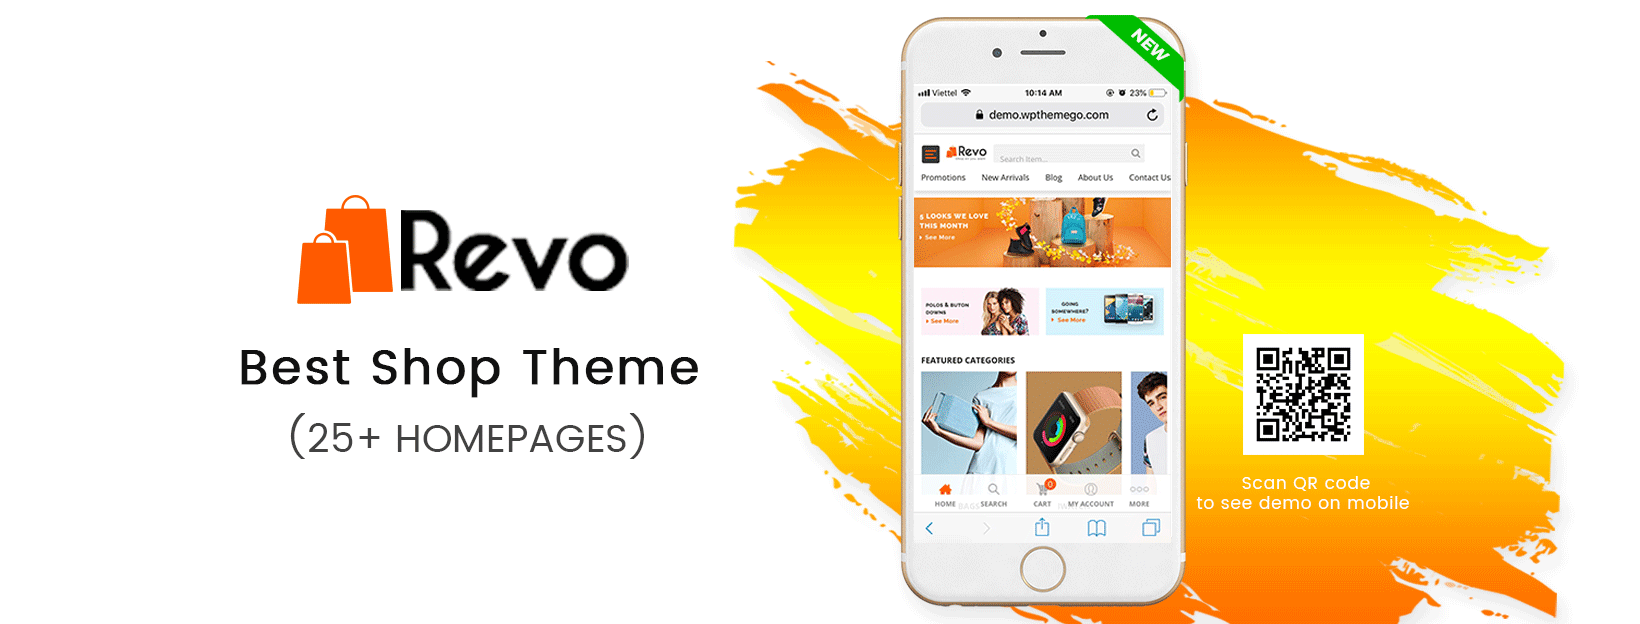 Revo - Best Multipurpose WooCommerce WordPress Theme (25+ Homepages & 5+ Mobile Layouts Ready)